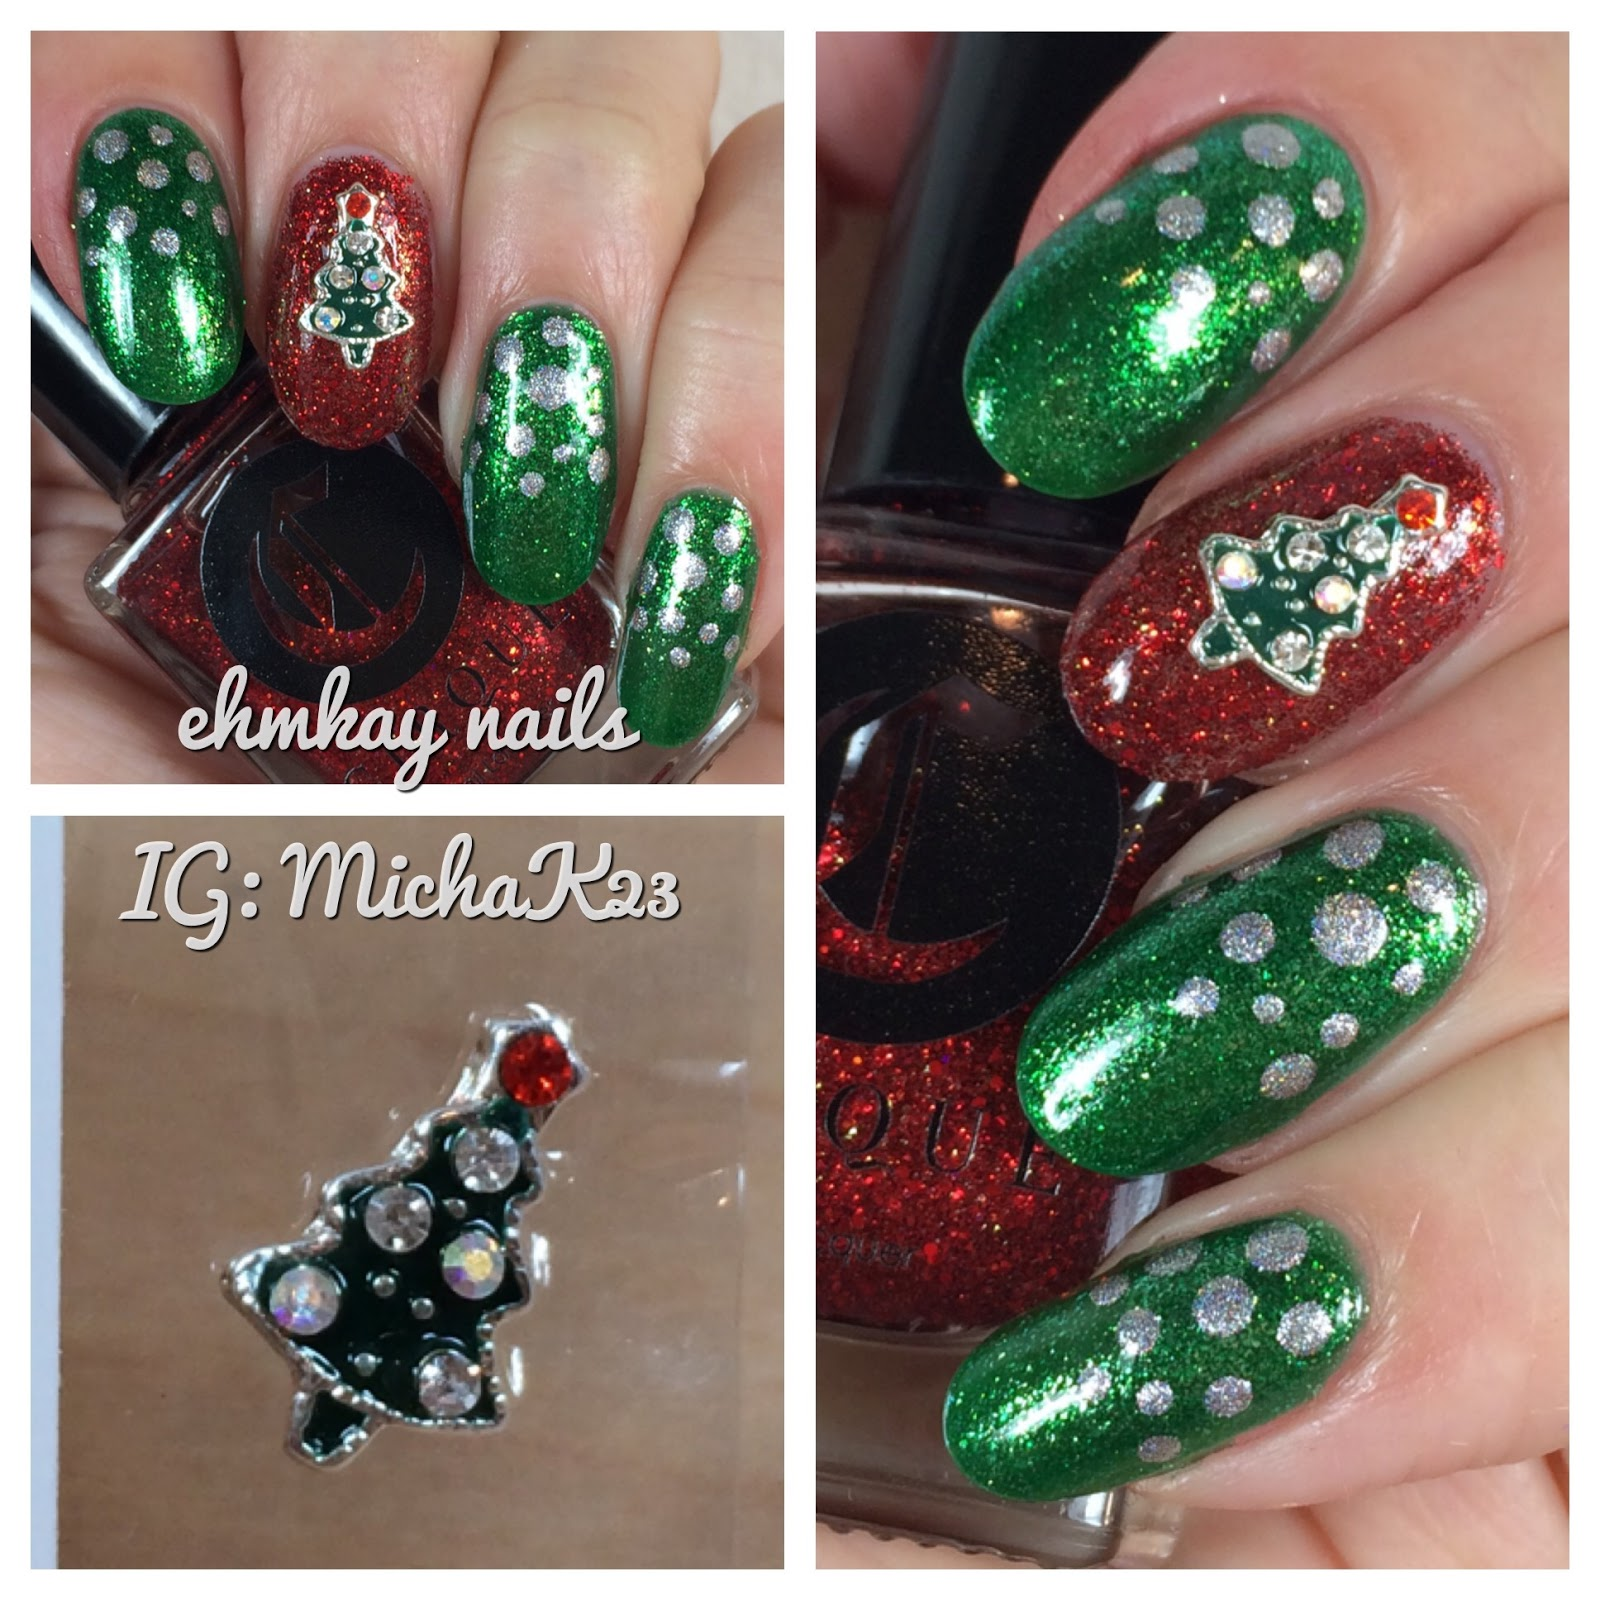 Ehmkay nails christmas tree nail jewelry and easy festive nail art christmas tree nail jewelry and easy festive nail art prinsesfo Images